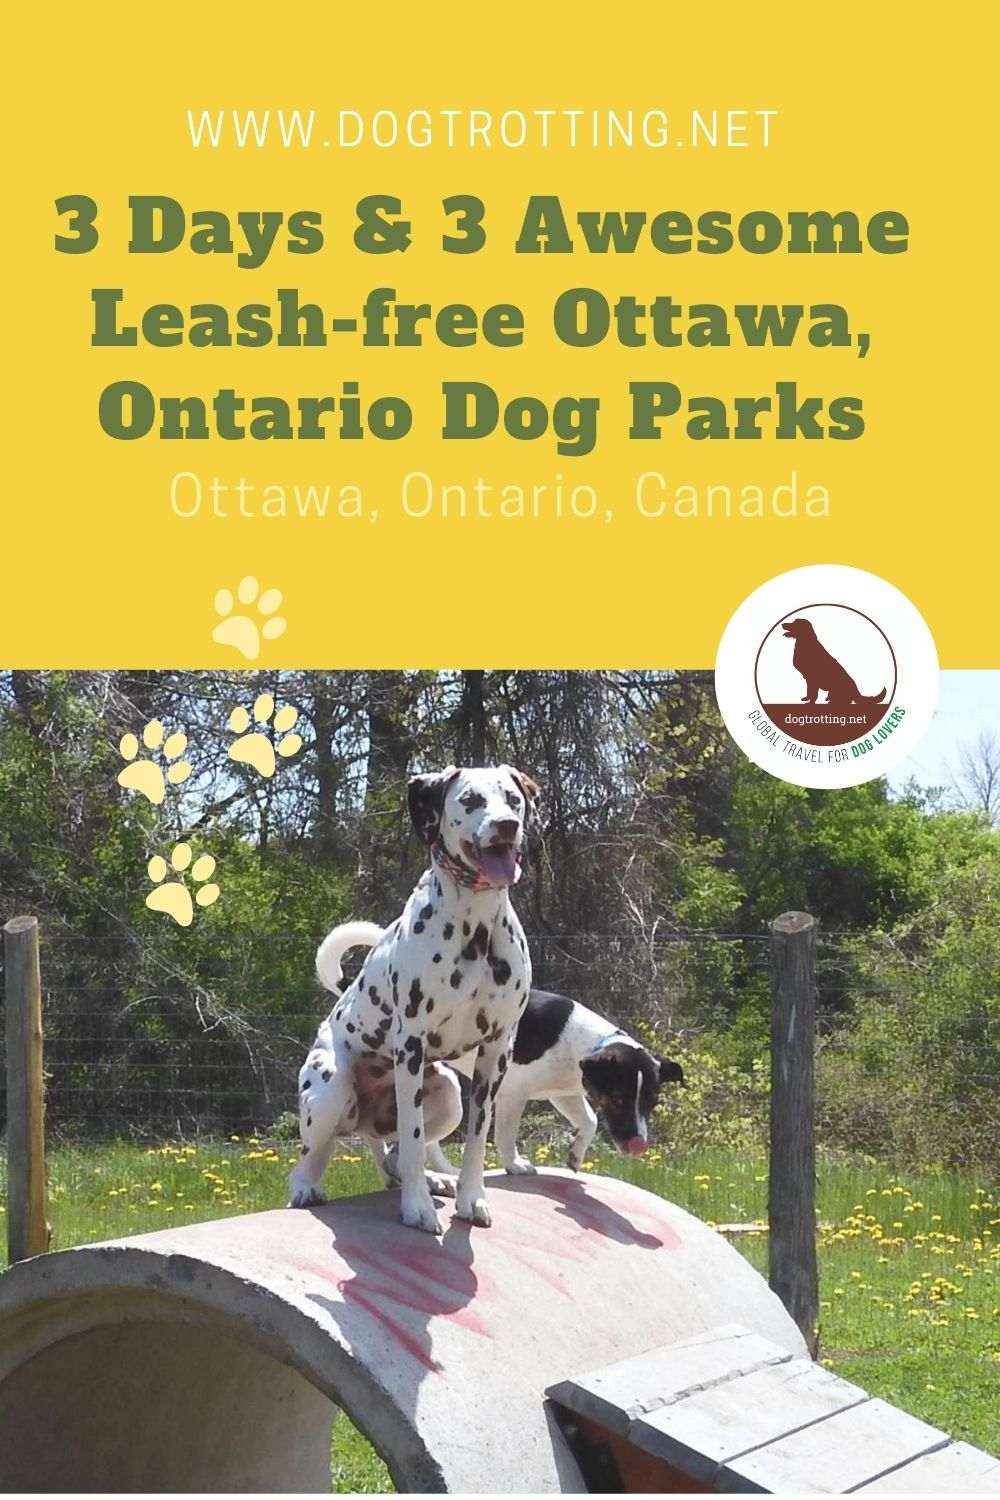 Explore Leash-free Ottawa, Ontario with your dog: One Puppy's Paradise is Two Pits